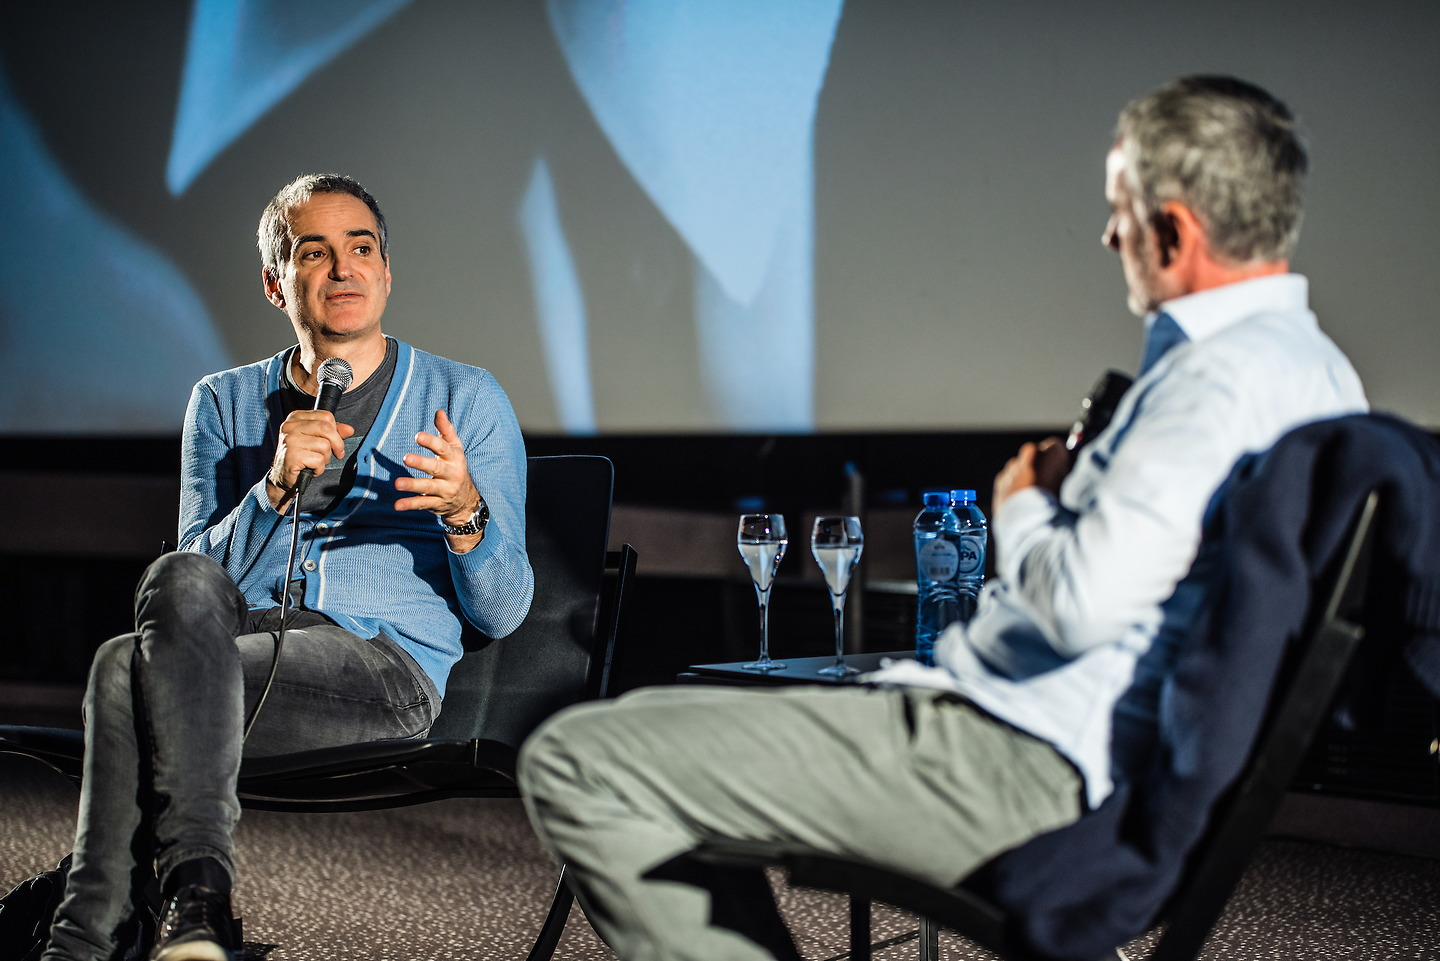 Film Fest Gent - Director's Talk: Olivier Assayas